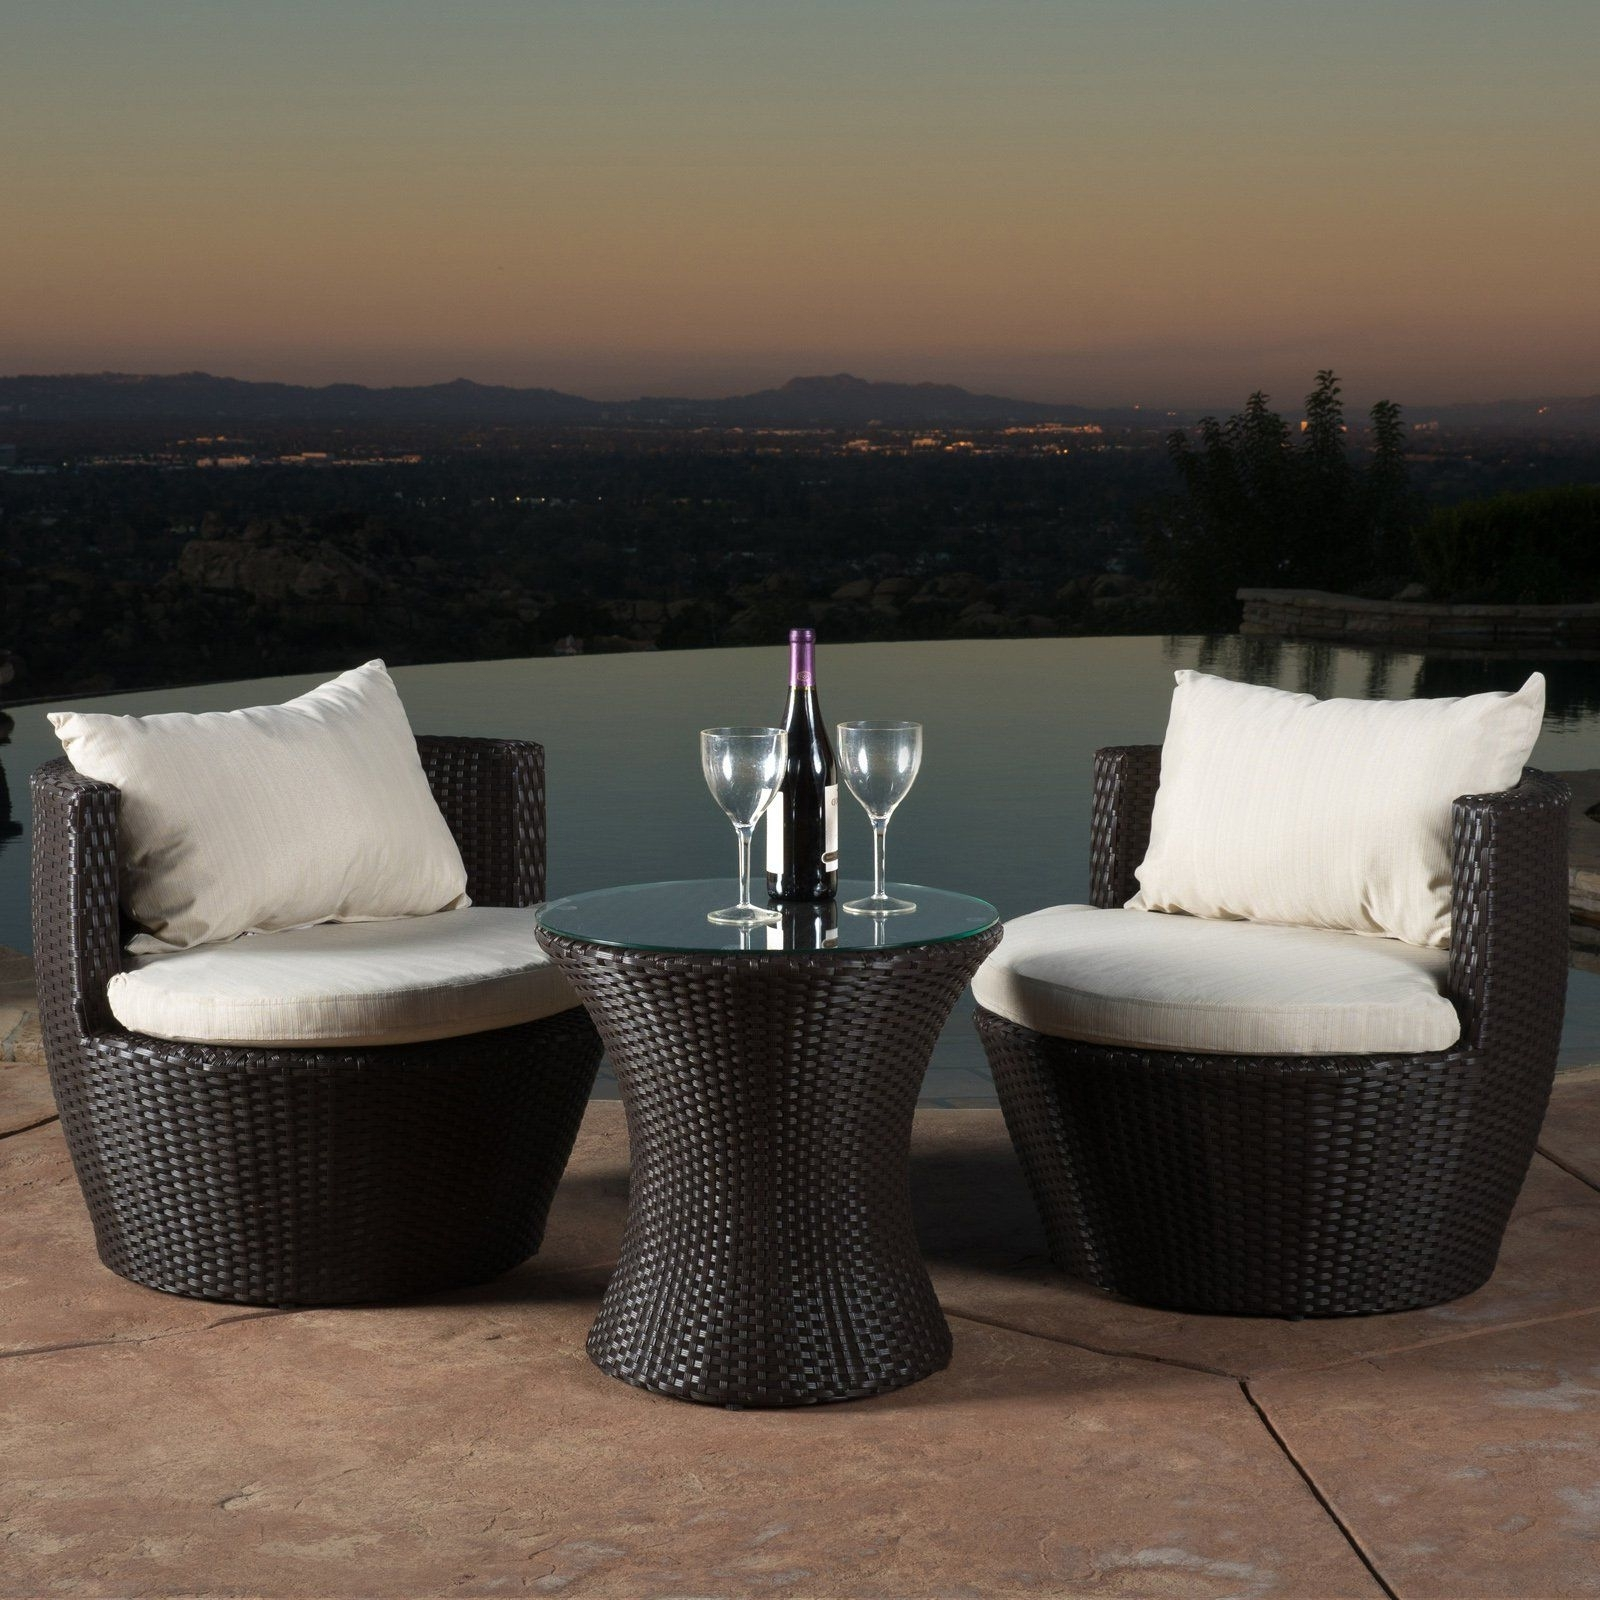 Best Selling Home Decor Furniture Angelina Wicker 3 Piece Patio Intended For Most Current 3 Piece Patio Conversation Sets (View 6 of 20)